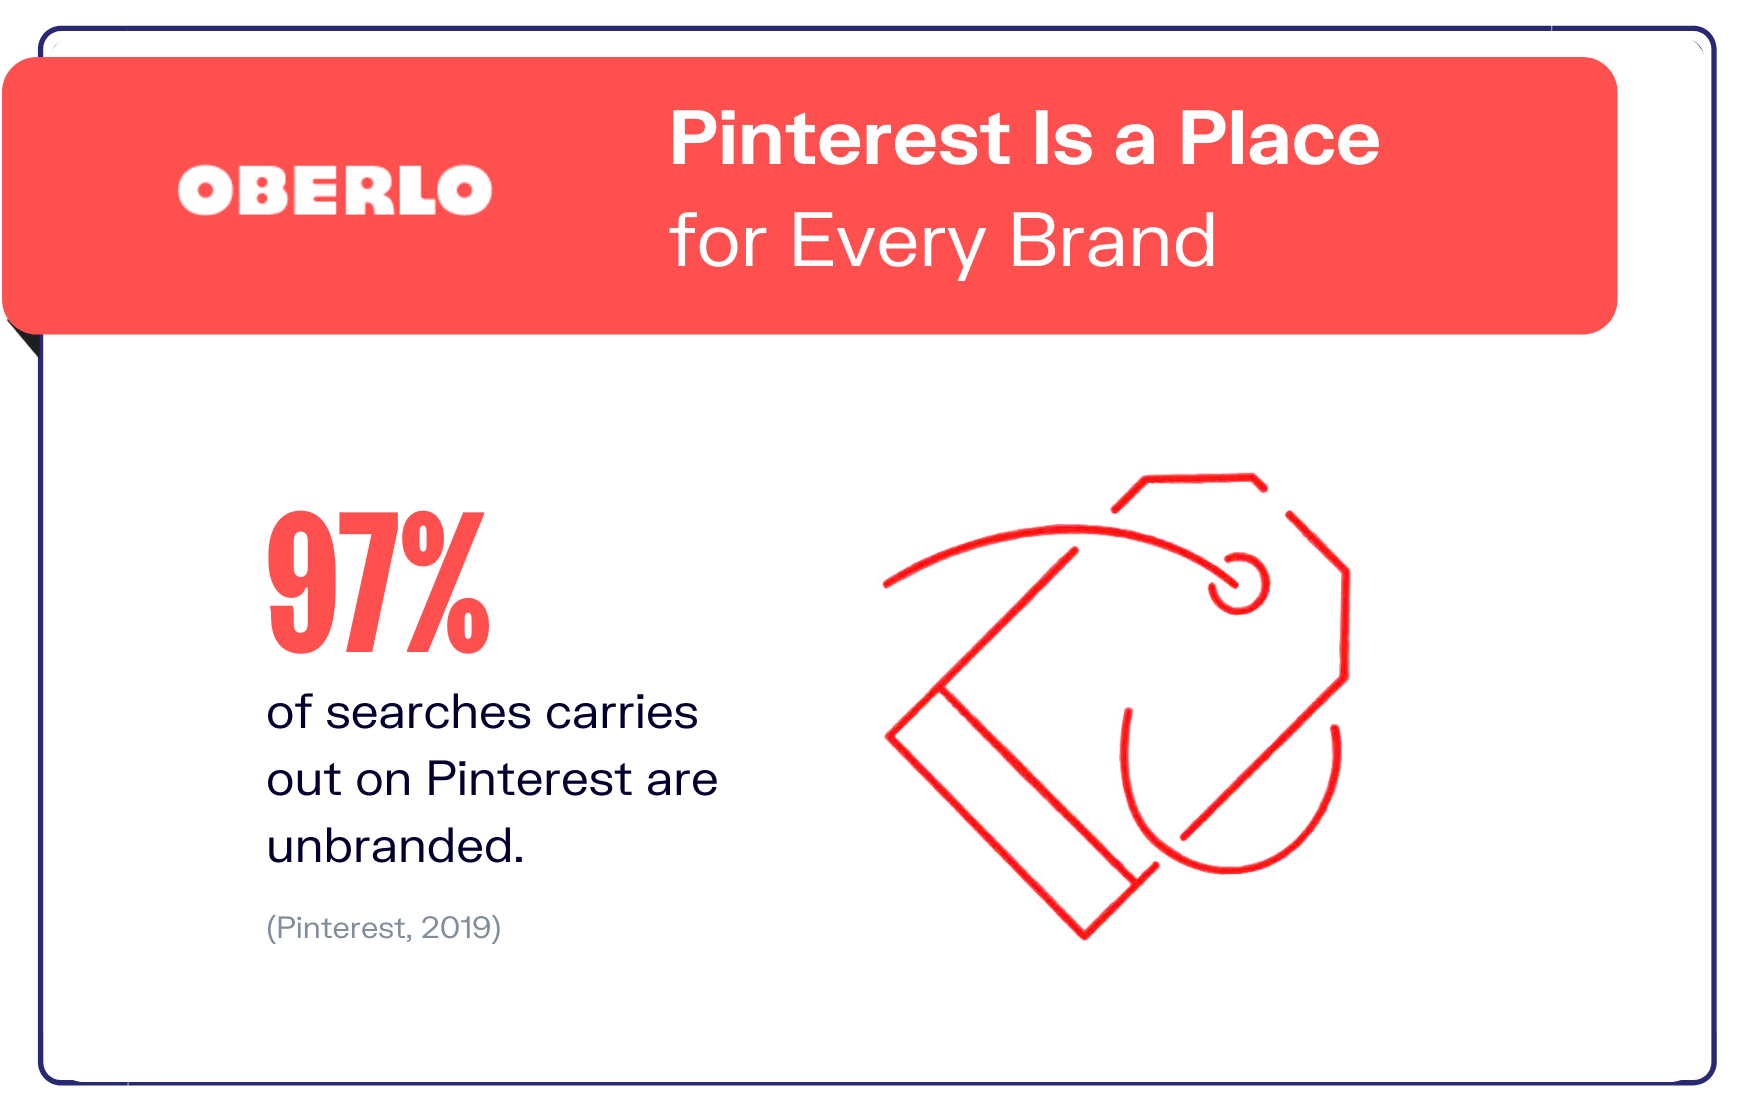 pinterest statistics stat 3 graphic